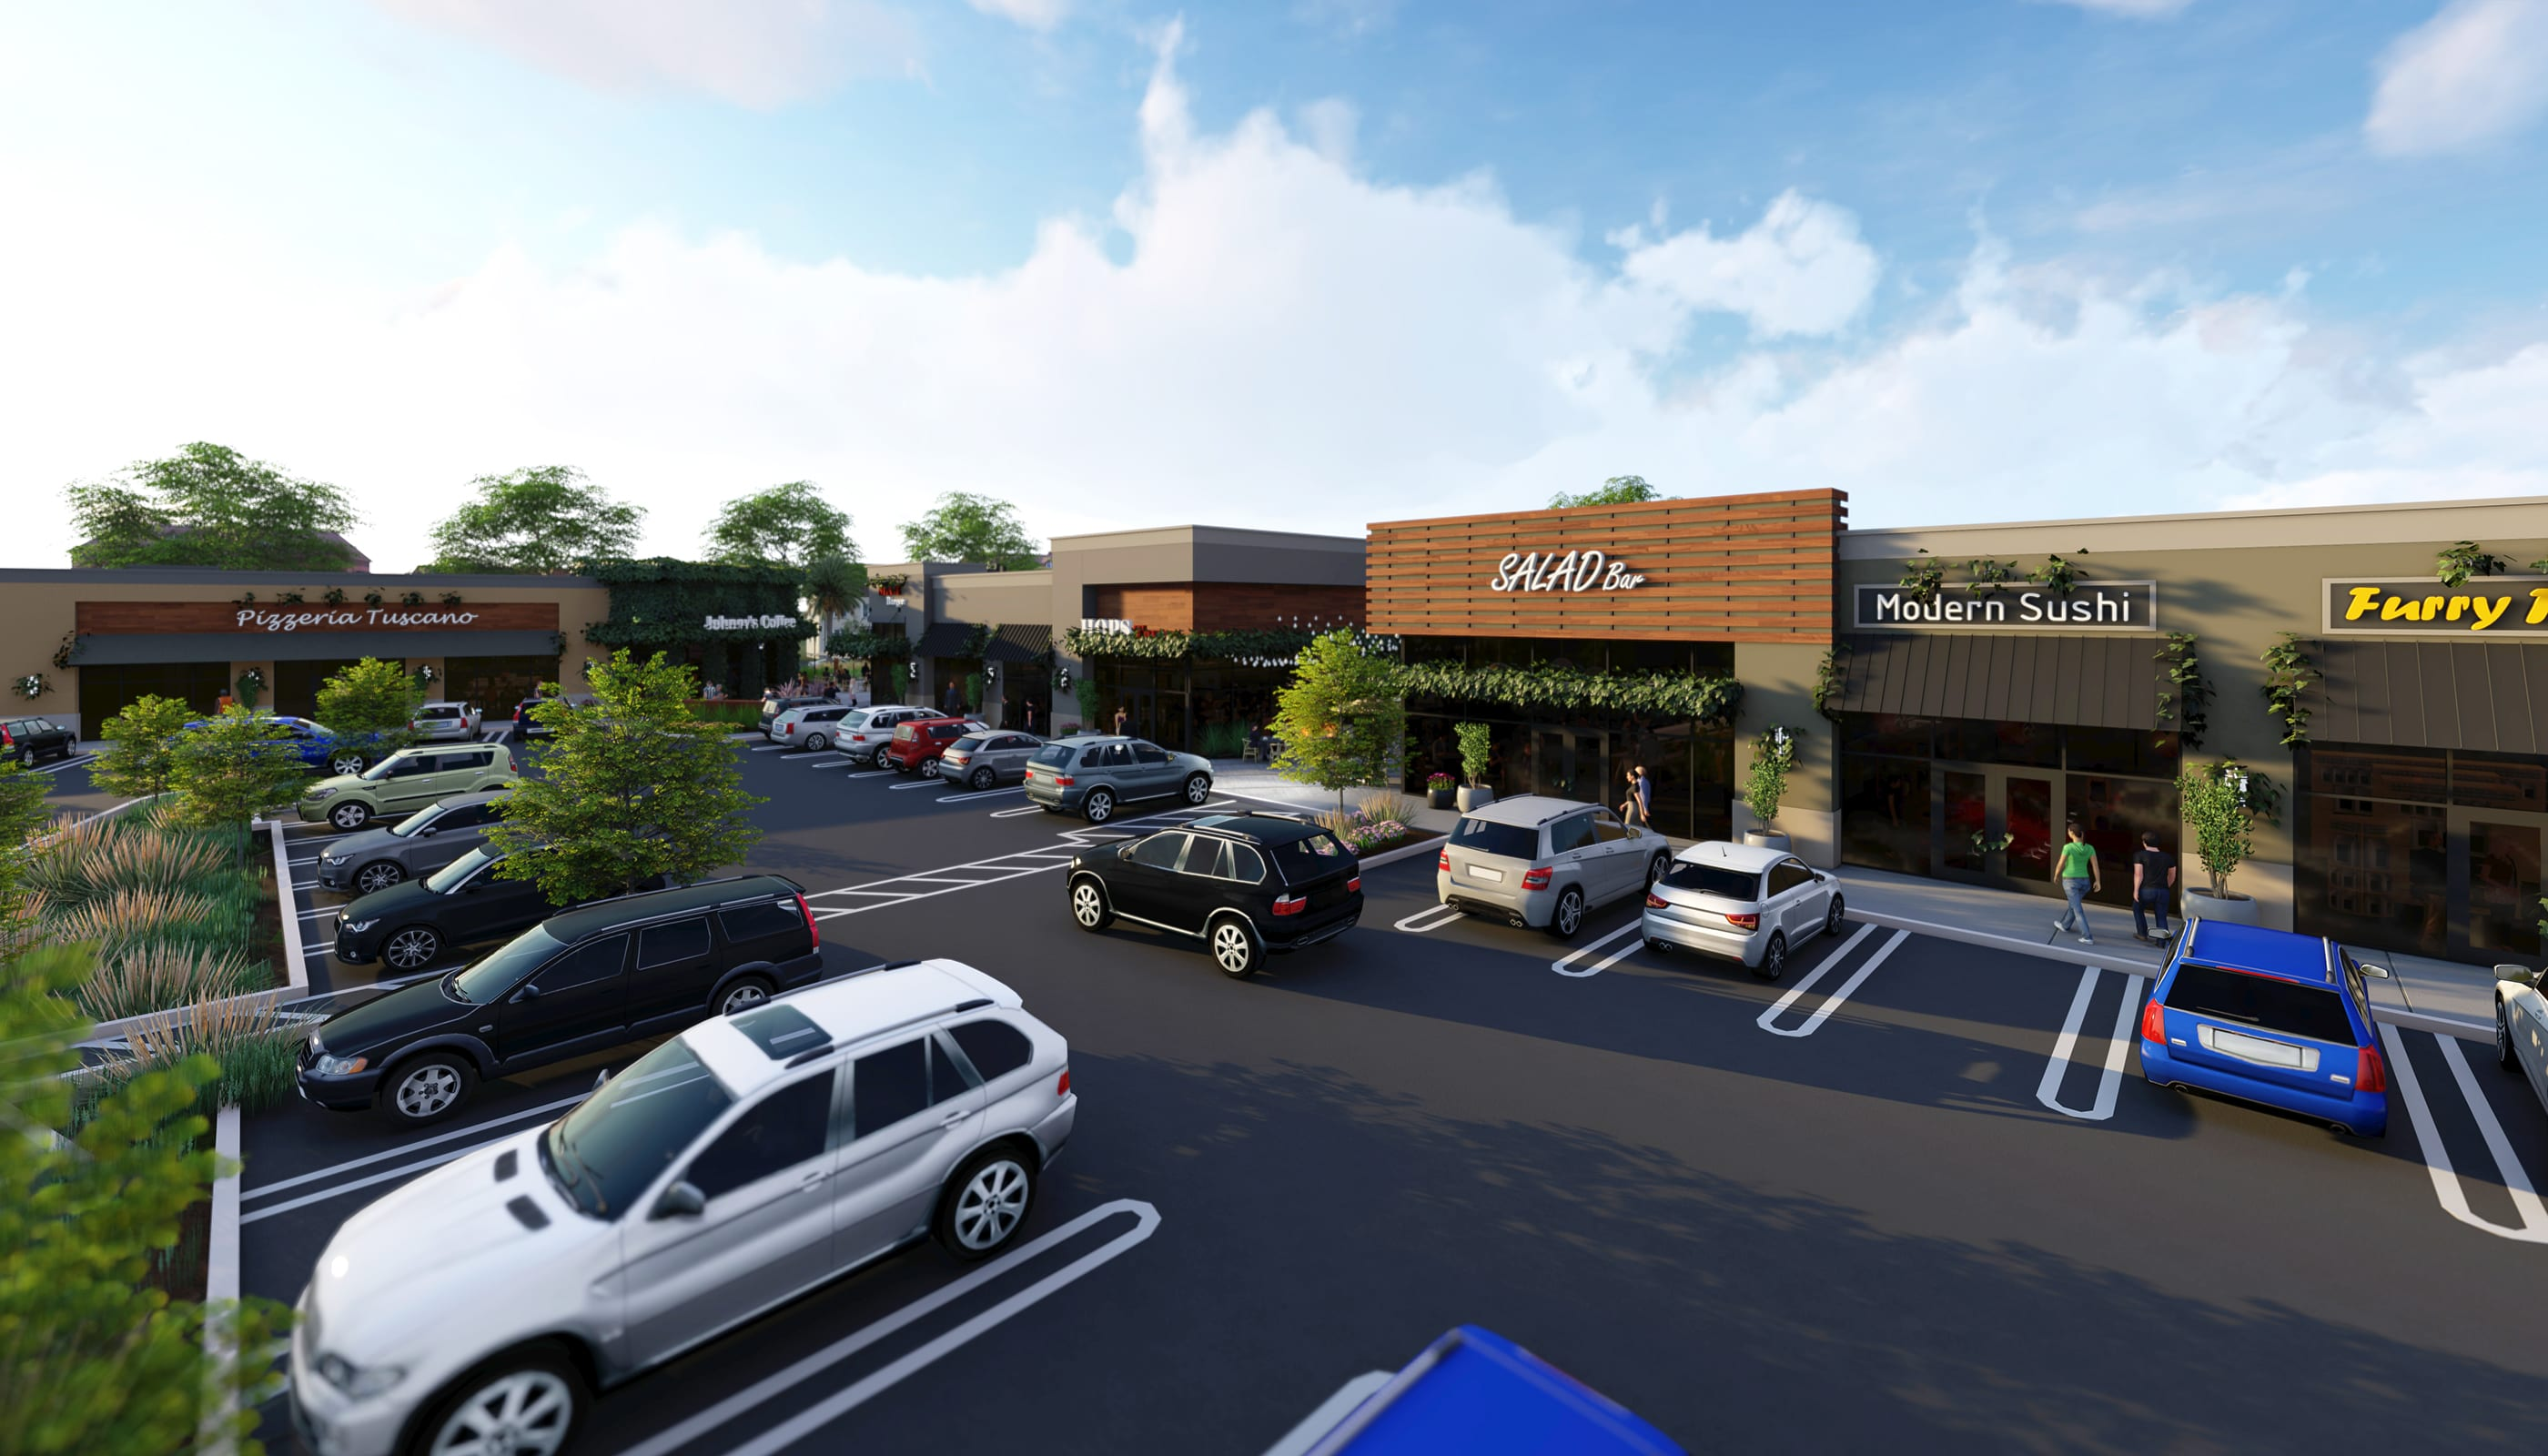 Amador Plaza - Commercial Architecture